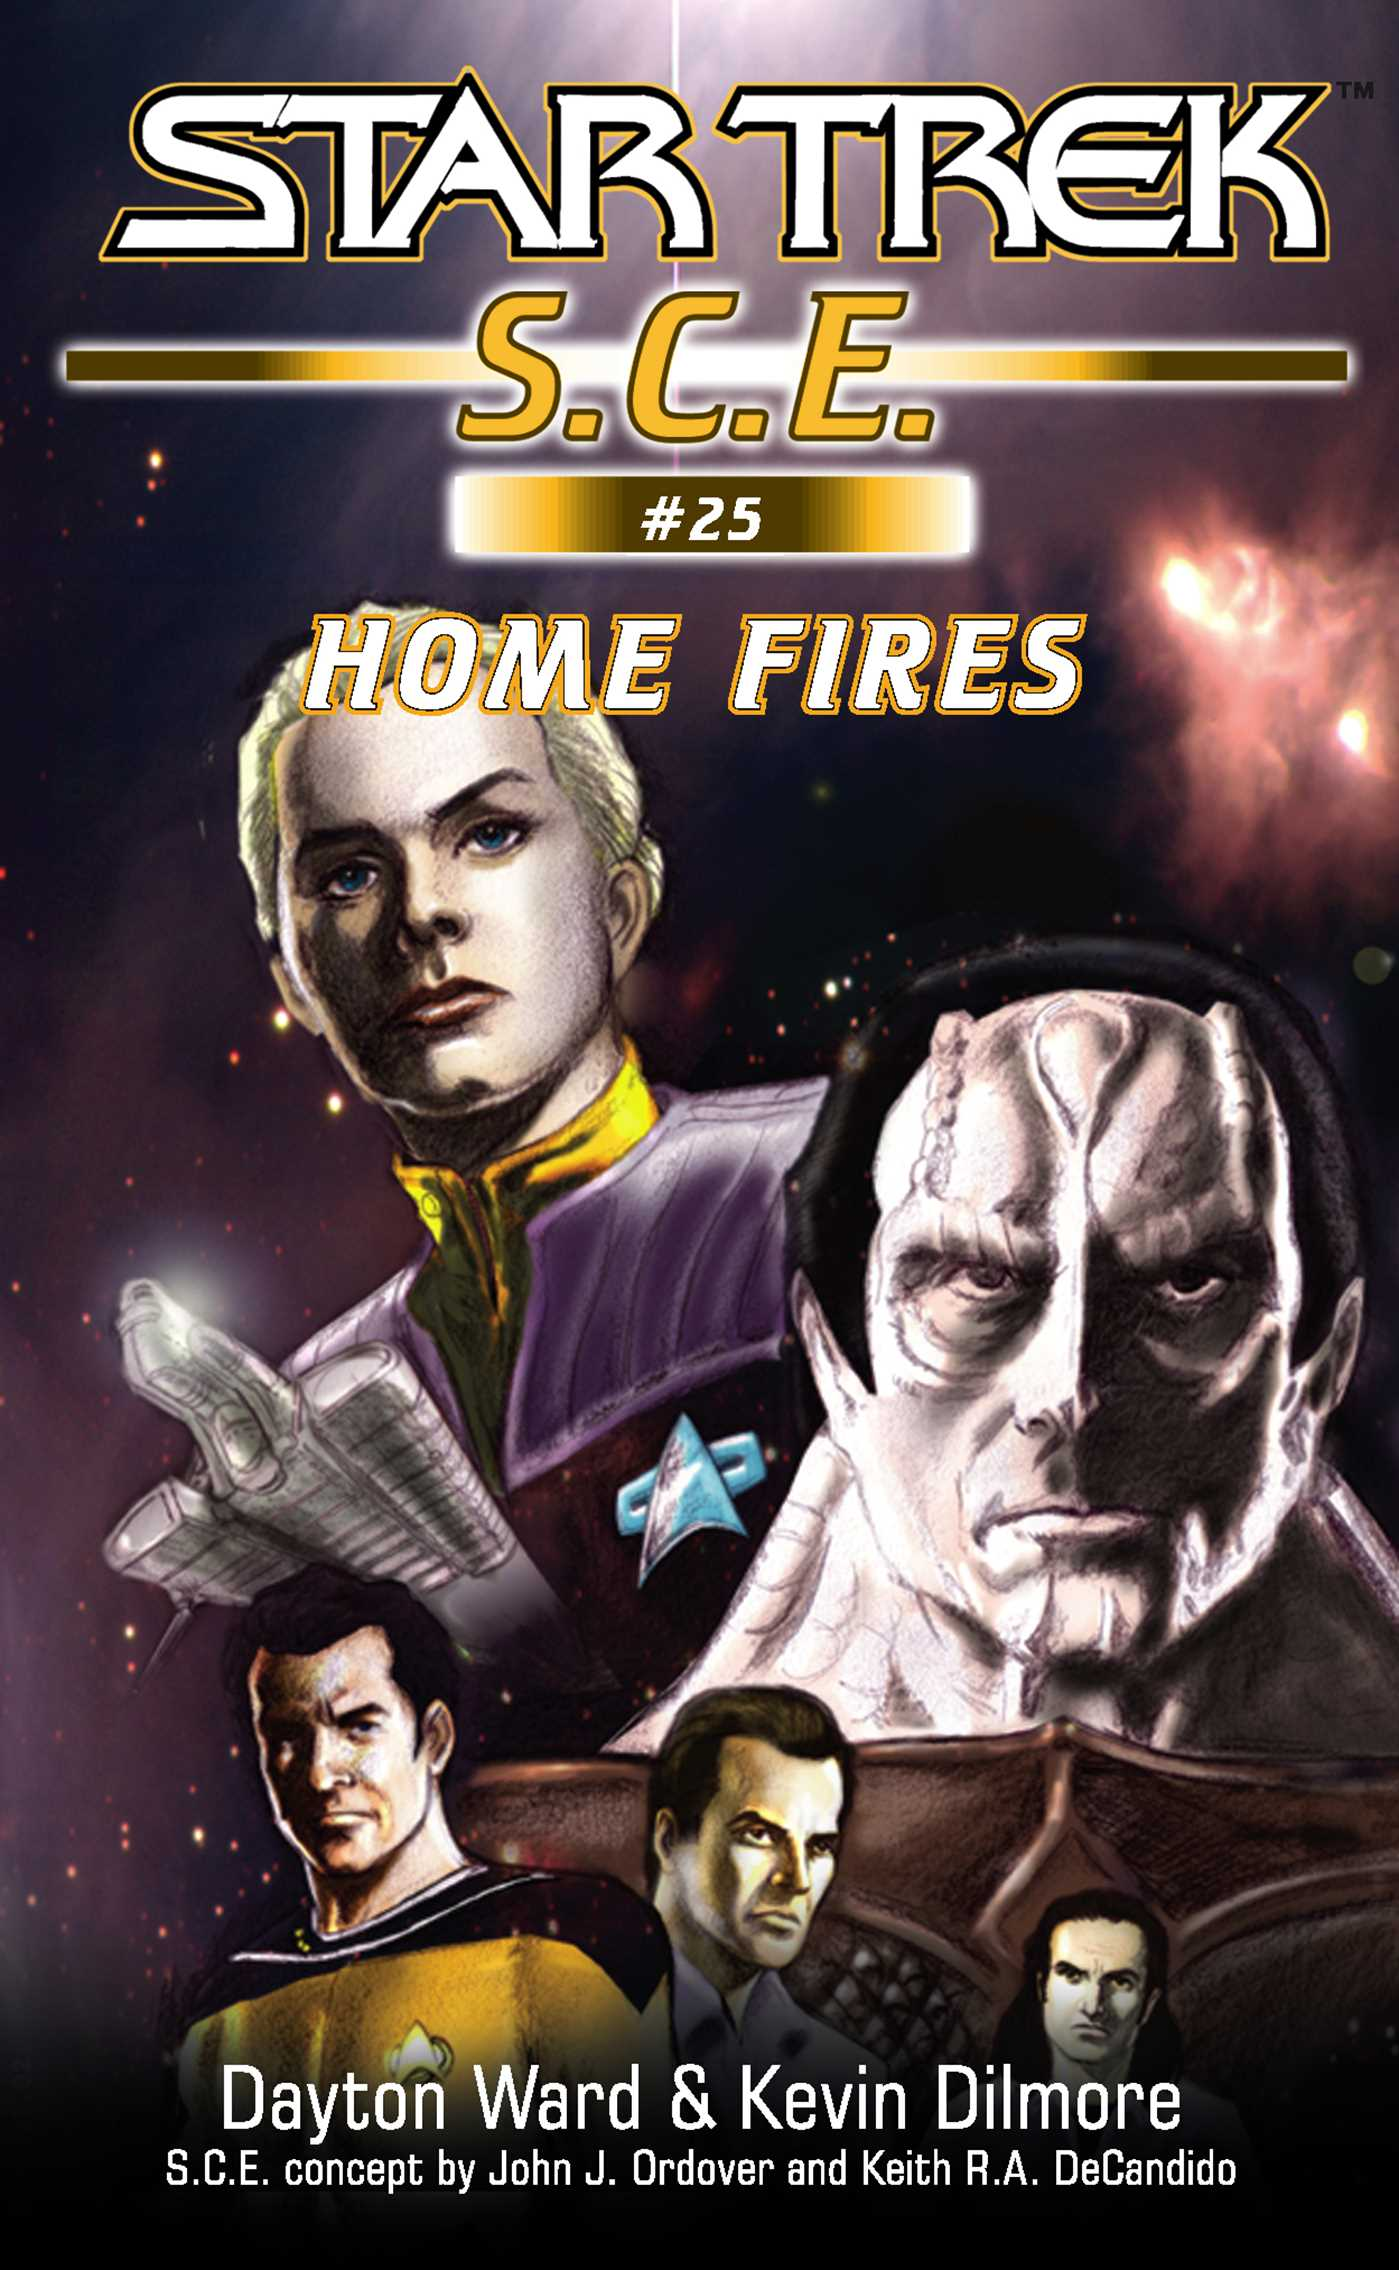 Star-trek-home-fires-9780743475914_hr